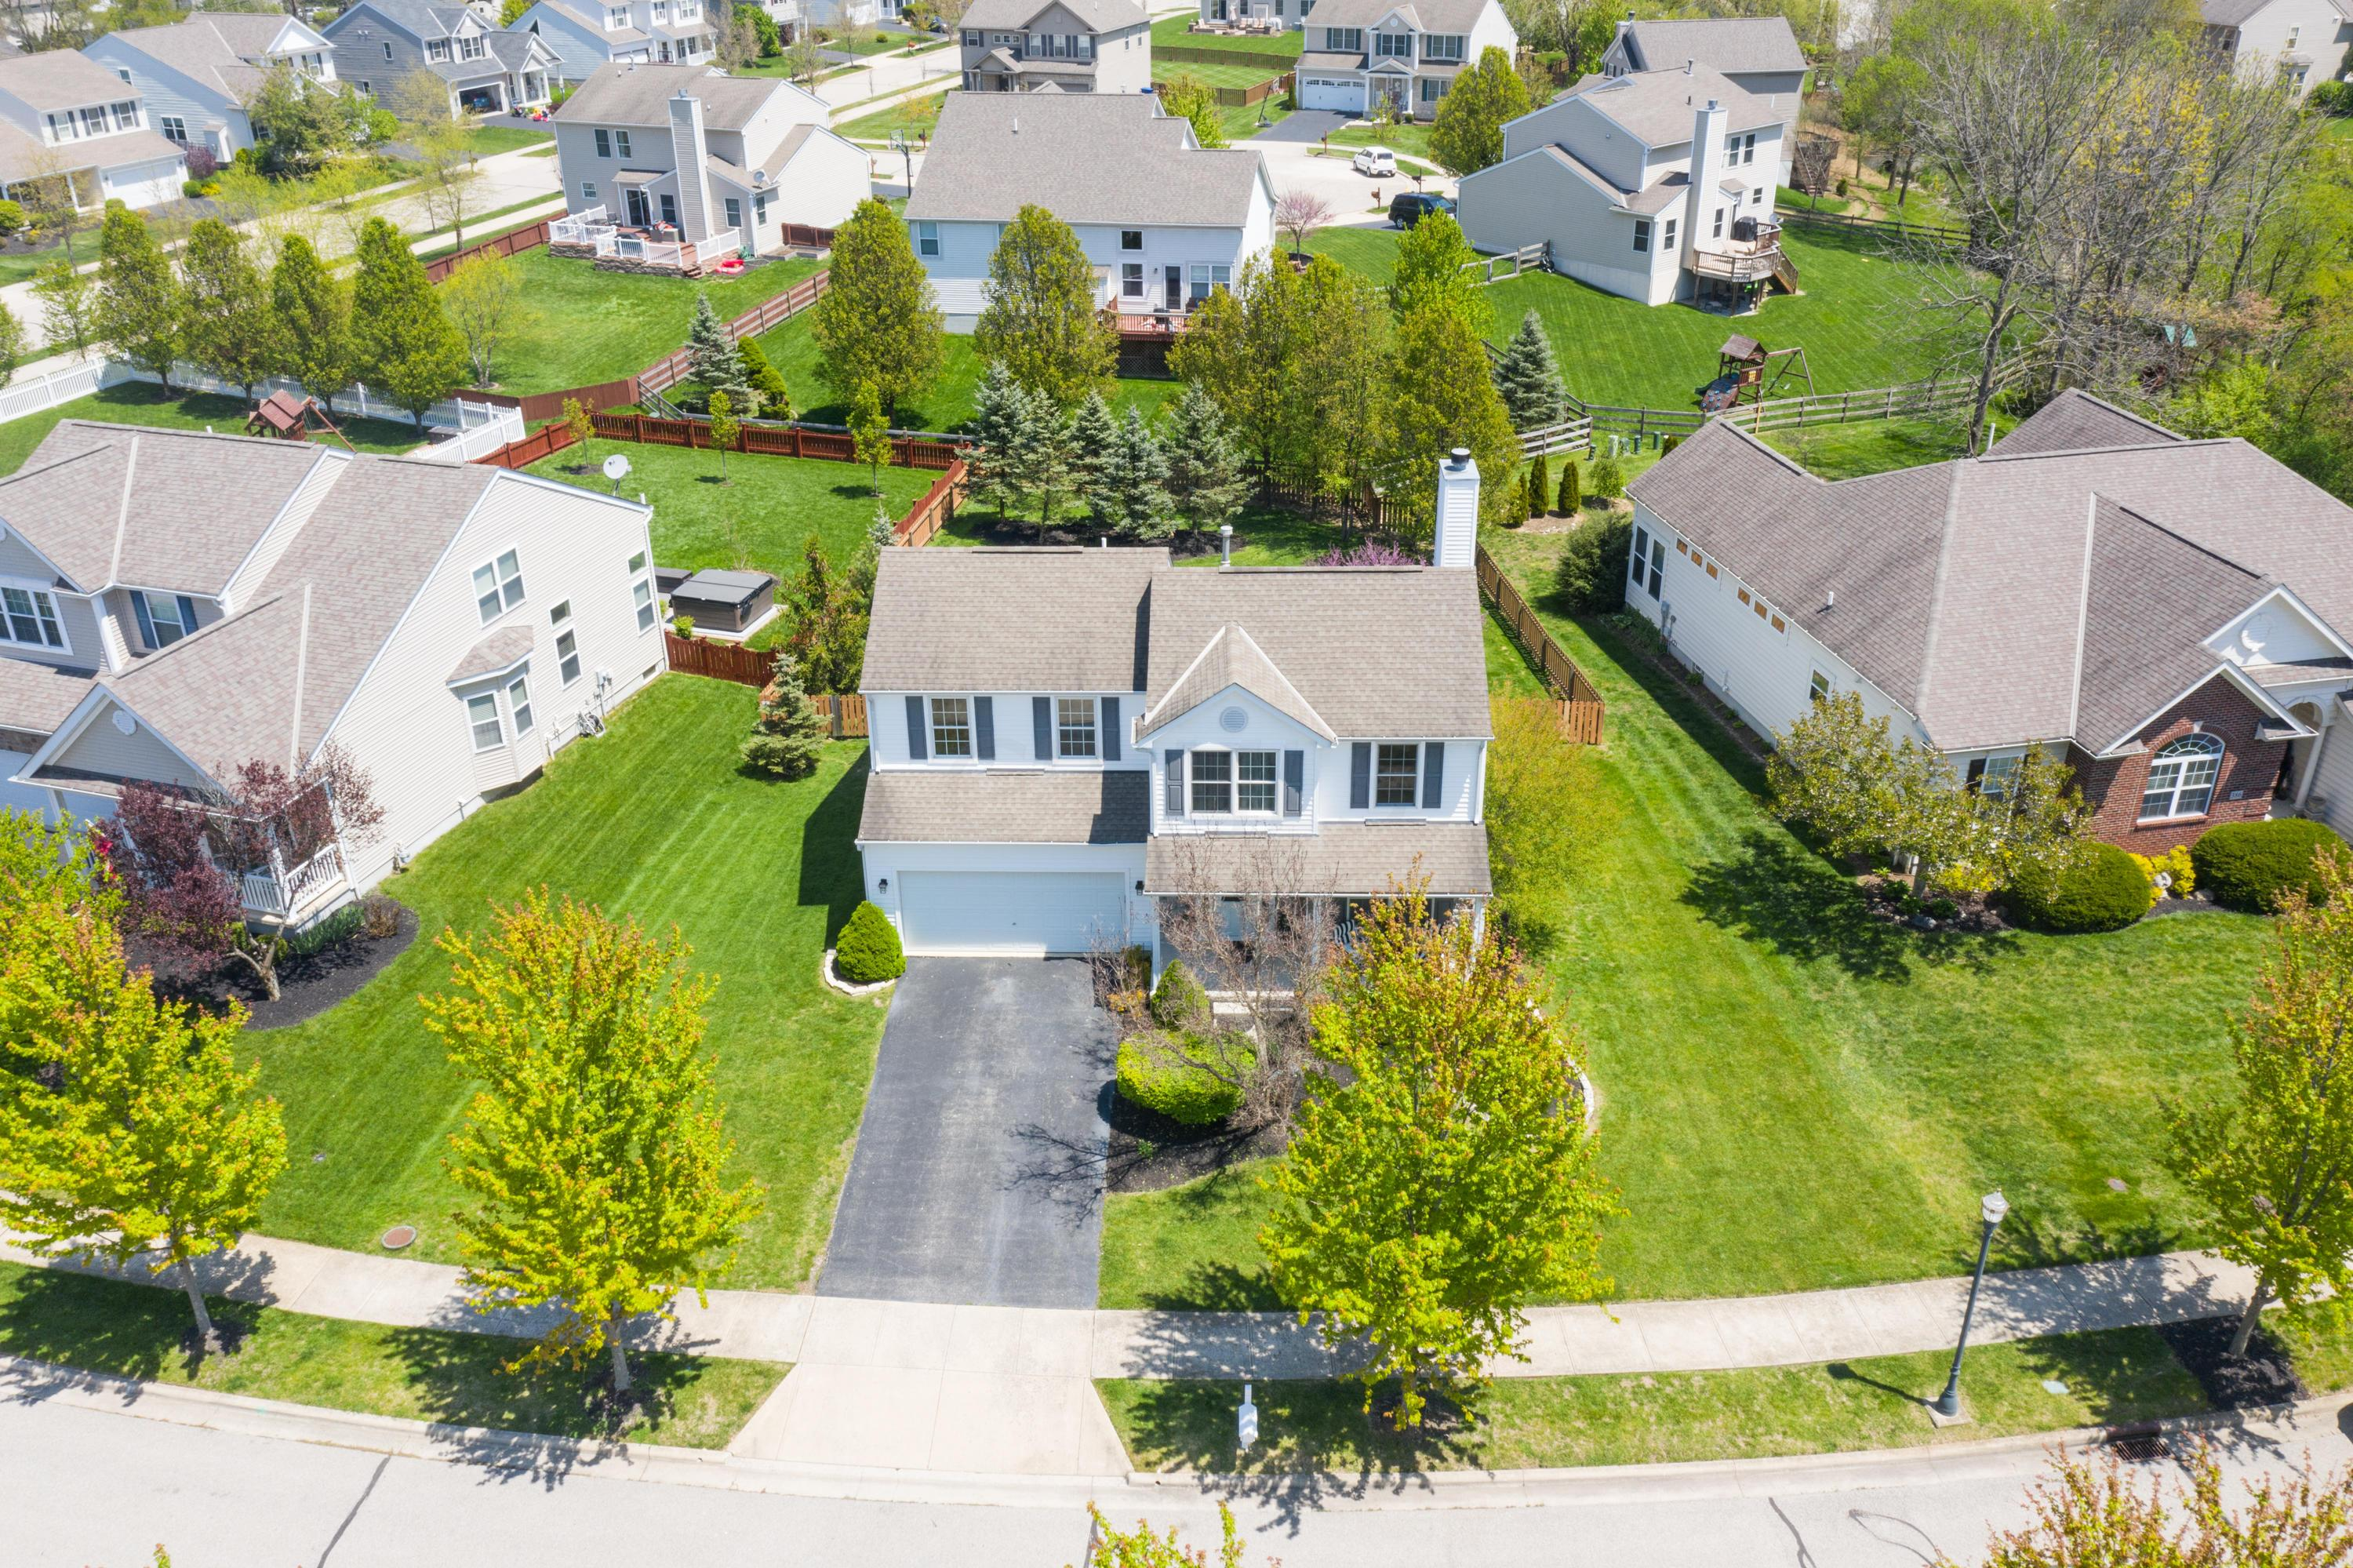 398 Amber Light Circle, Delaware, Ohio 43015, 4 Bedrooms Bedrooms, ,3 BathroomsBathrooms,Residential,For Sale,Amber Light,220040820